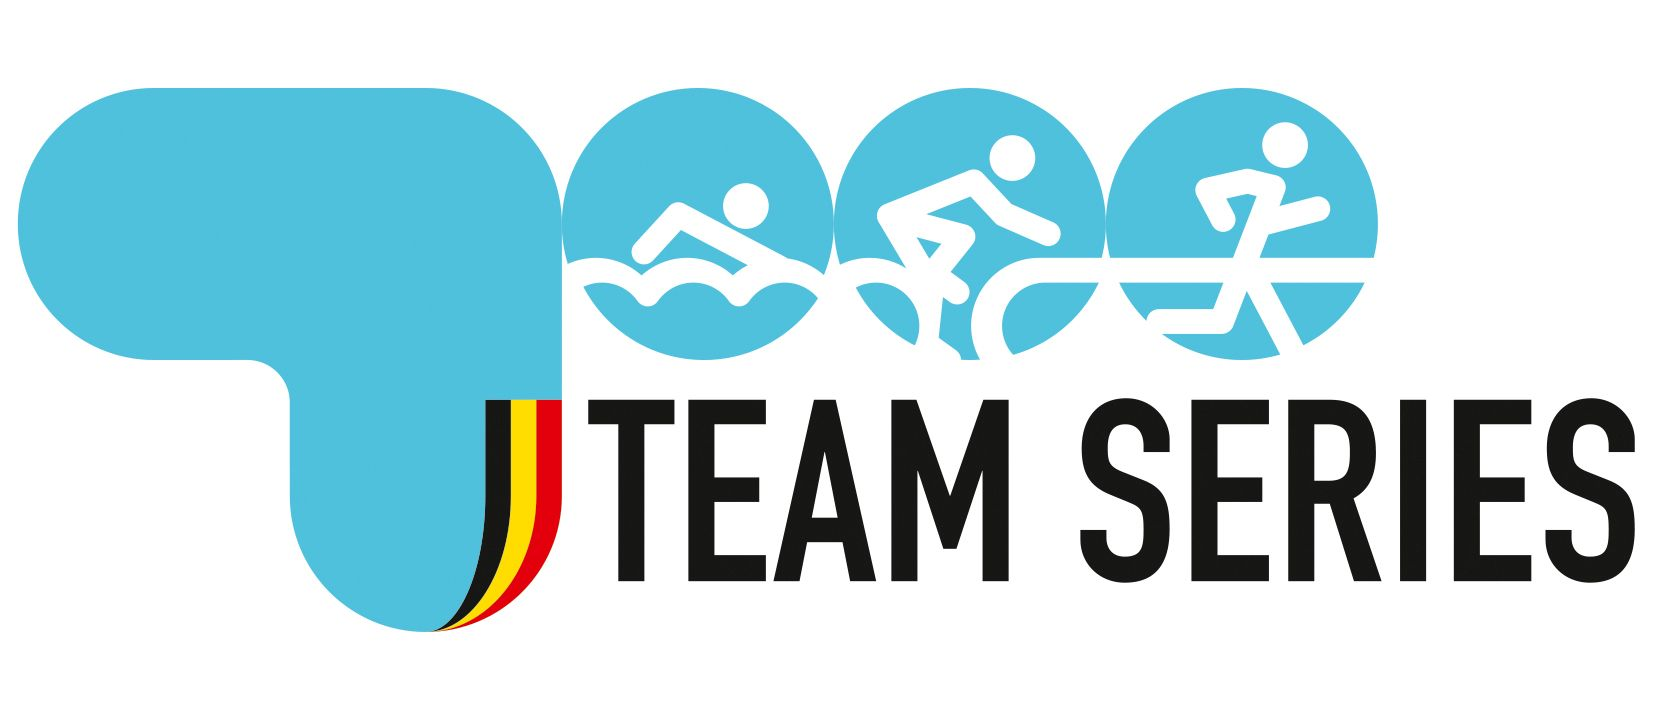 Team Triathlon Series rgb